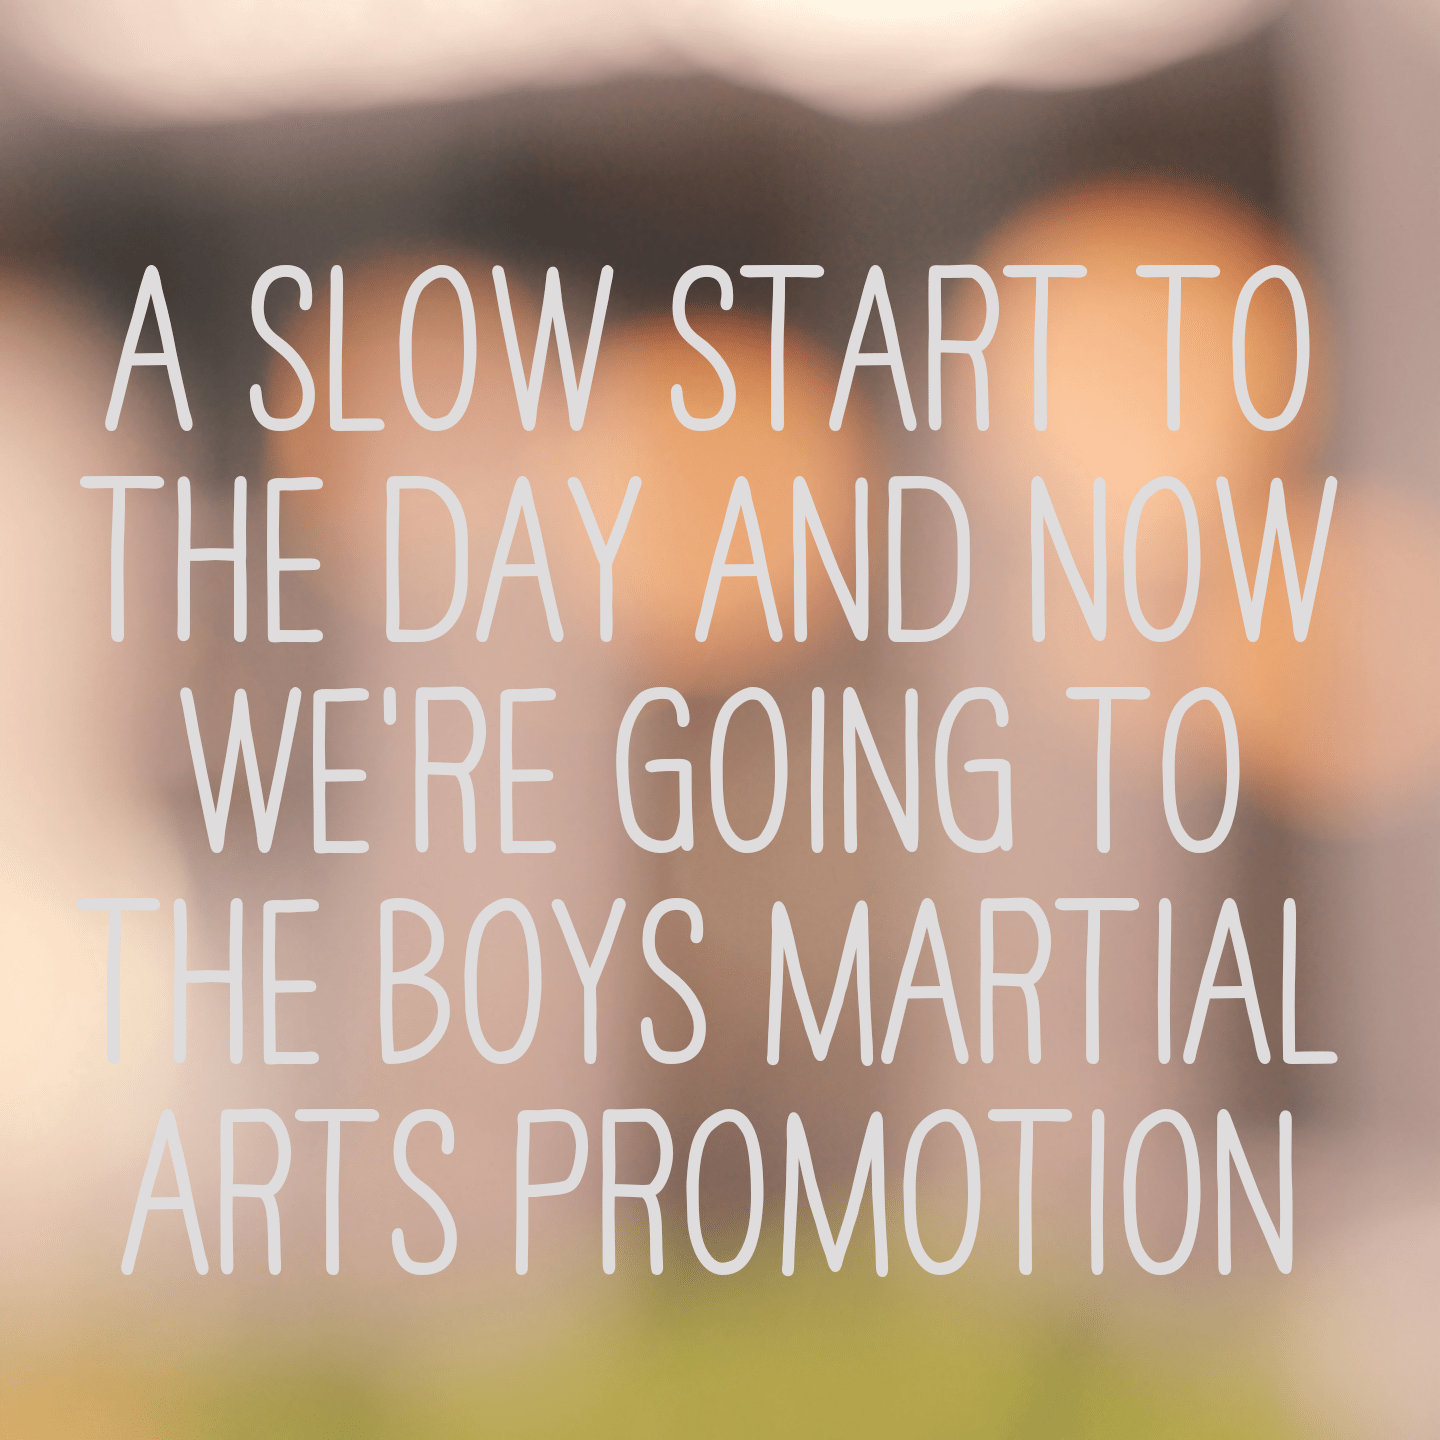 A slow start to the day and now we're going to the boys martial arts promotion